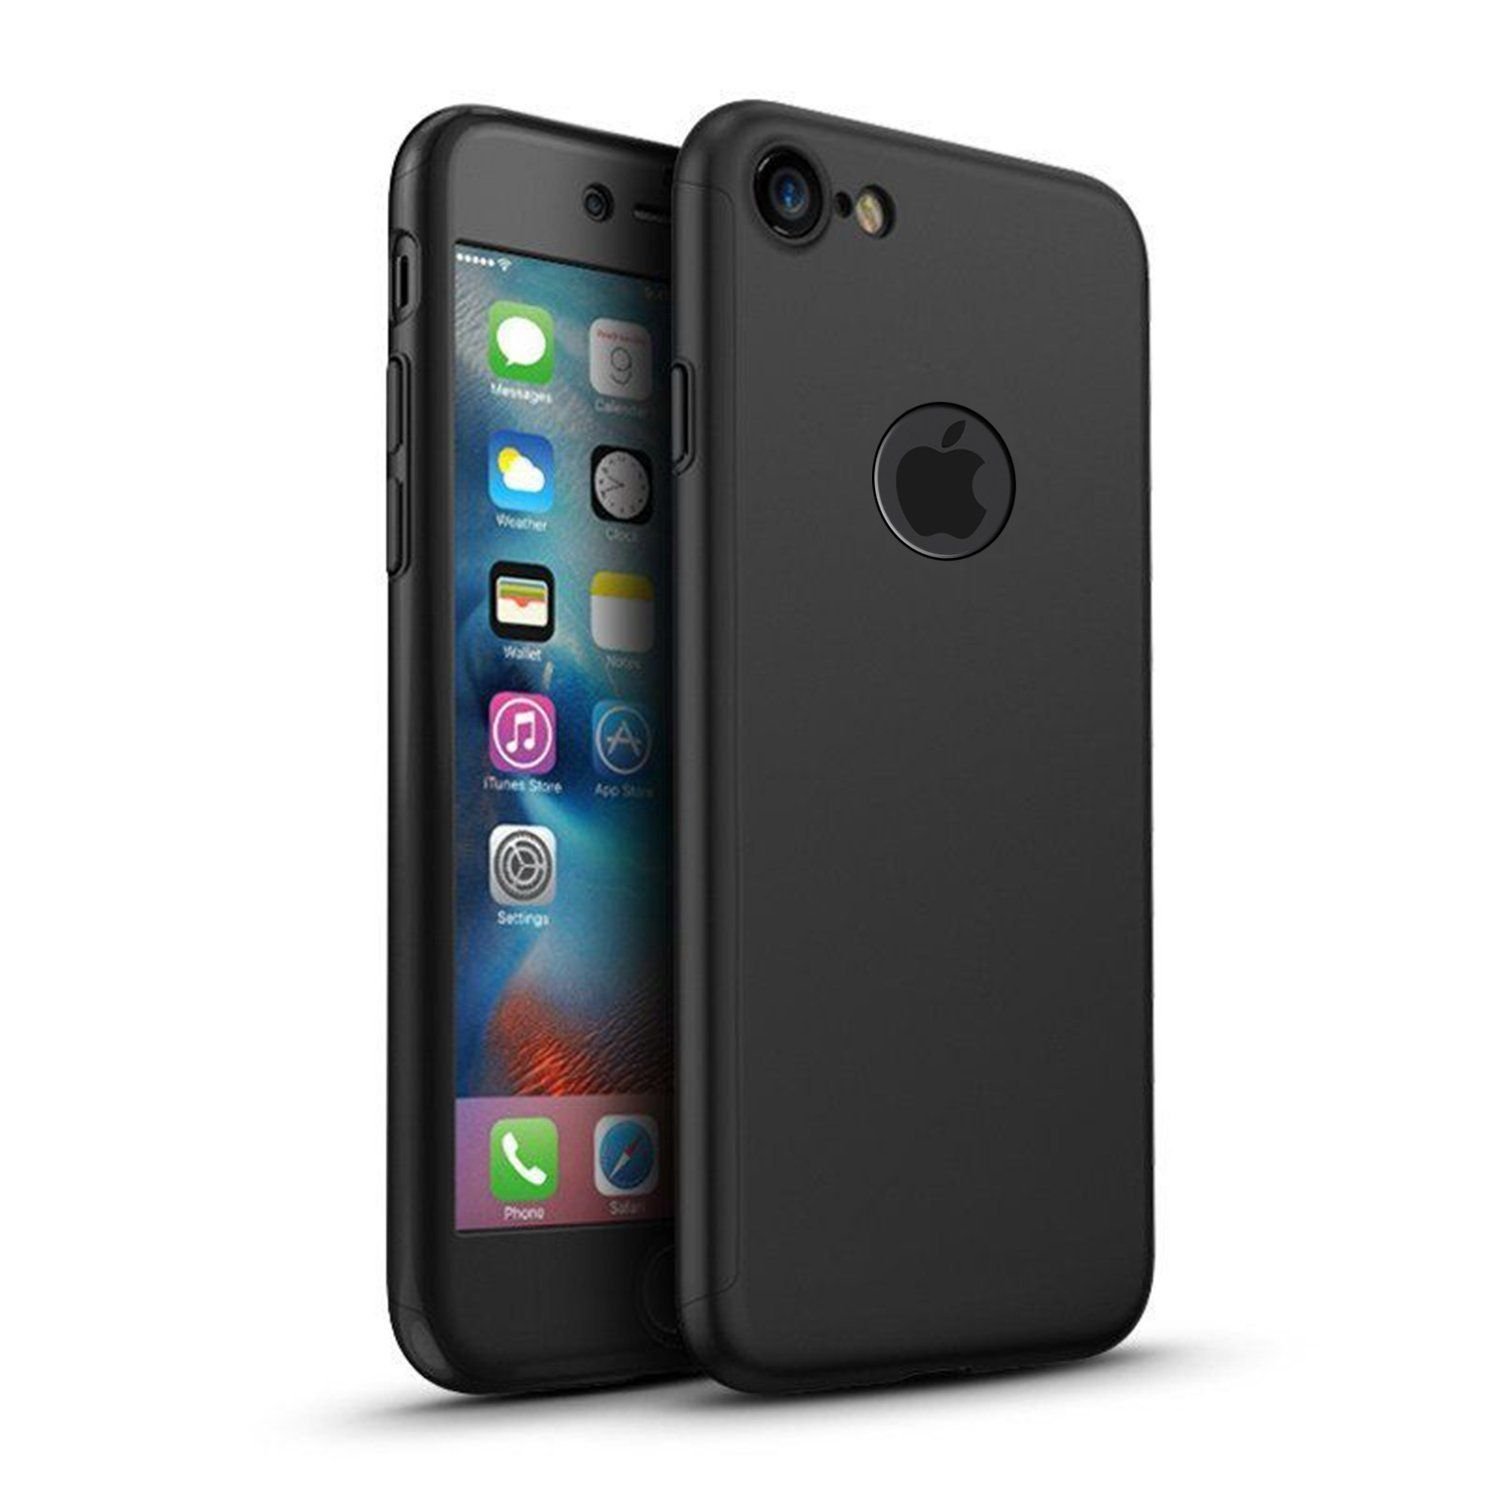 2 In 1 360 Full Body Phone Cases For Iphone 7 Plus Products 2in1 Gravity Case Cover Tempered Glass 6 Pinterest